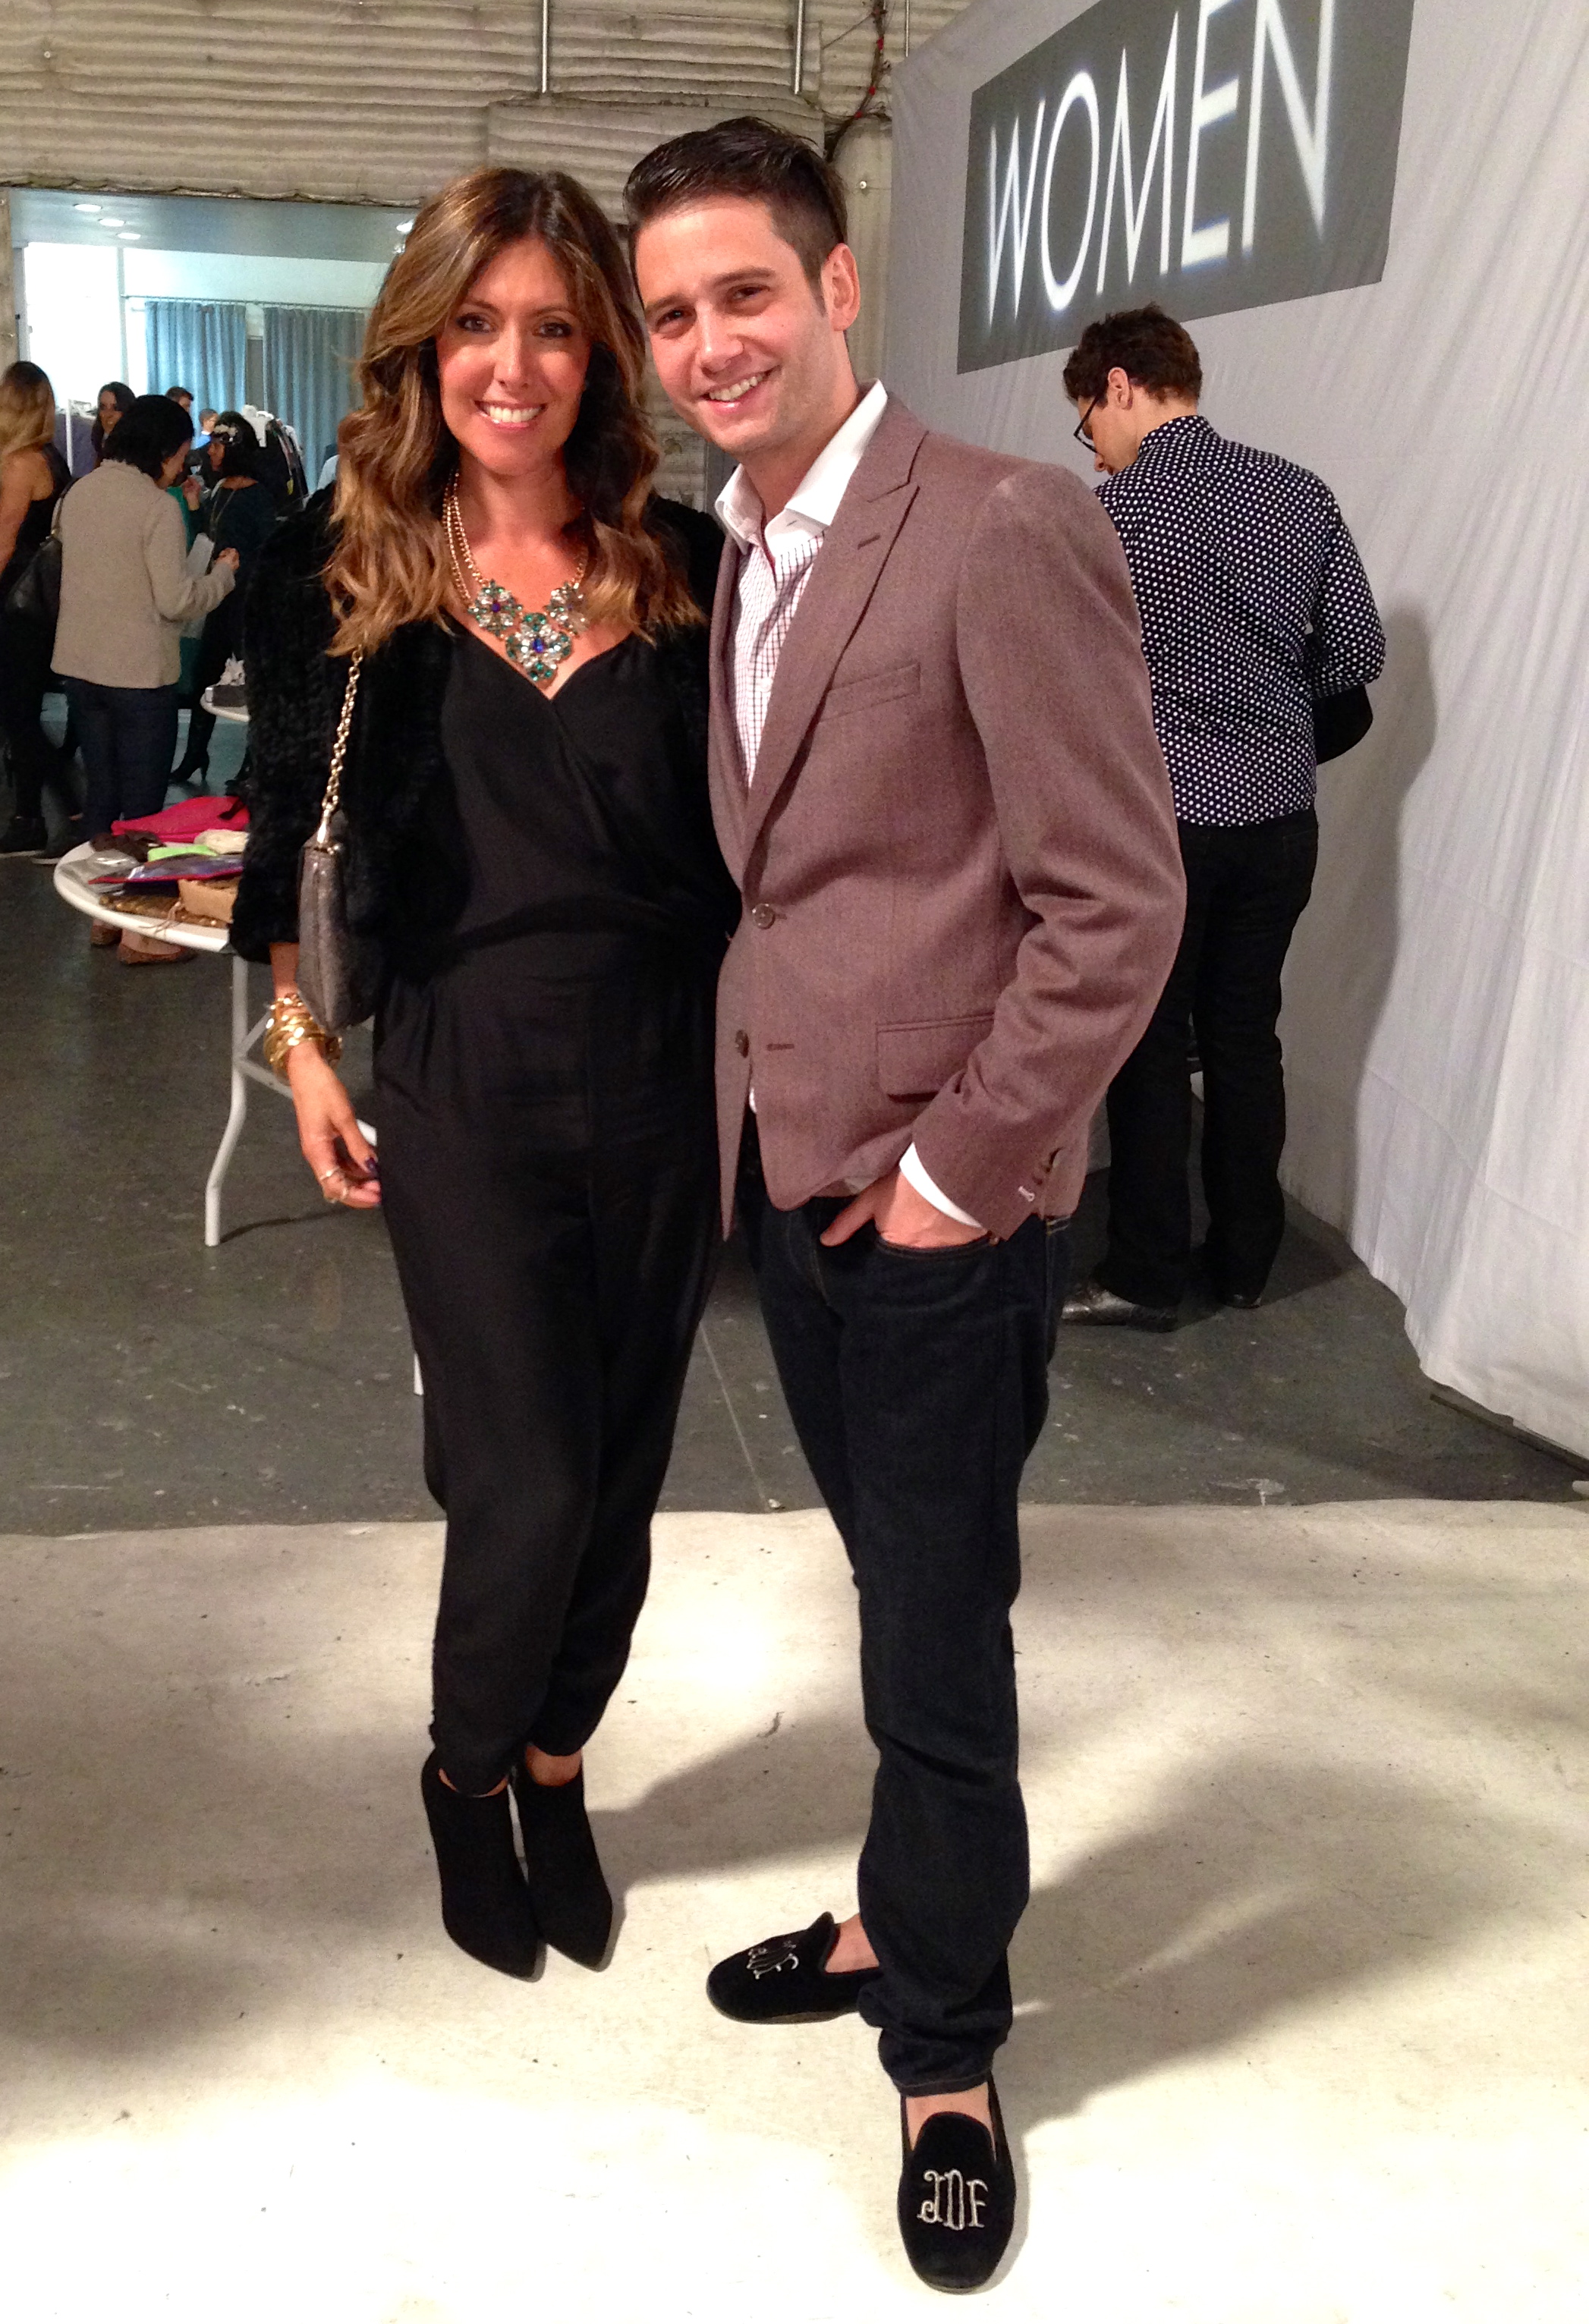 With Josh Flagg from Bravo's Million Dollar Listing LA at the Gilt Groupe Warehouse sale! Statement necklace by  BaubleBar . Fur jacket by Pologeorgis.